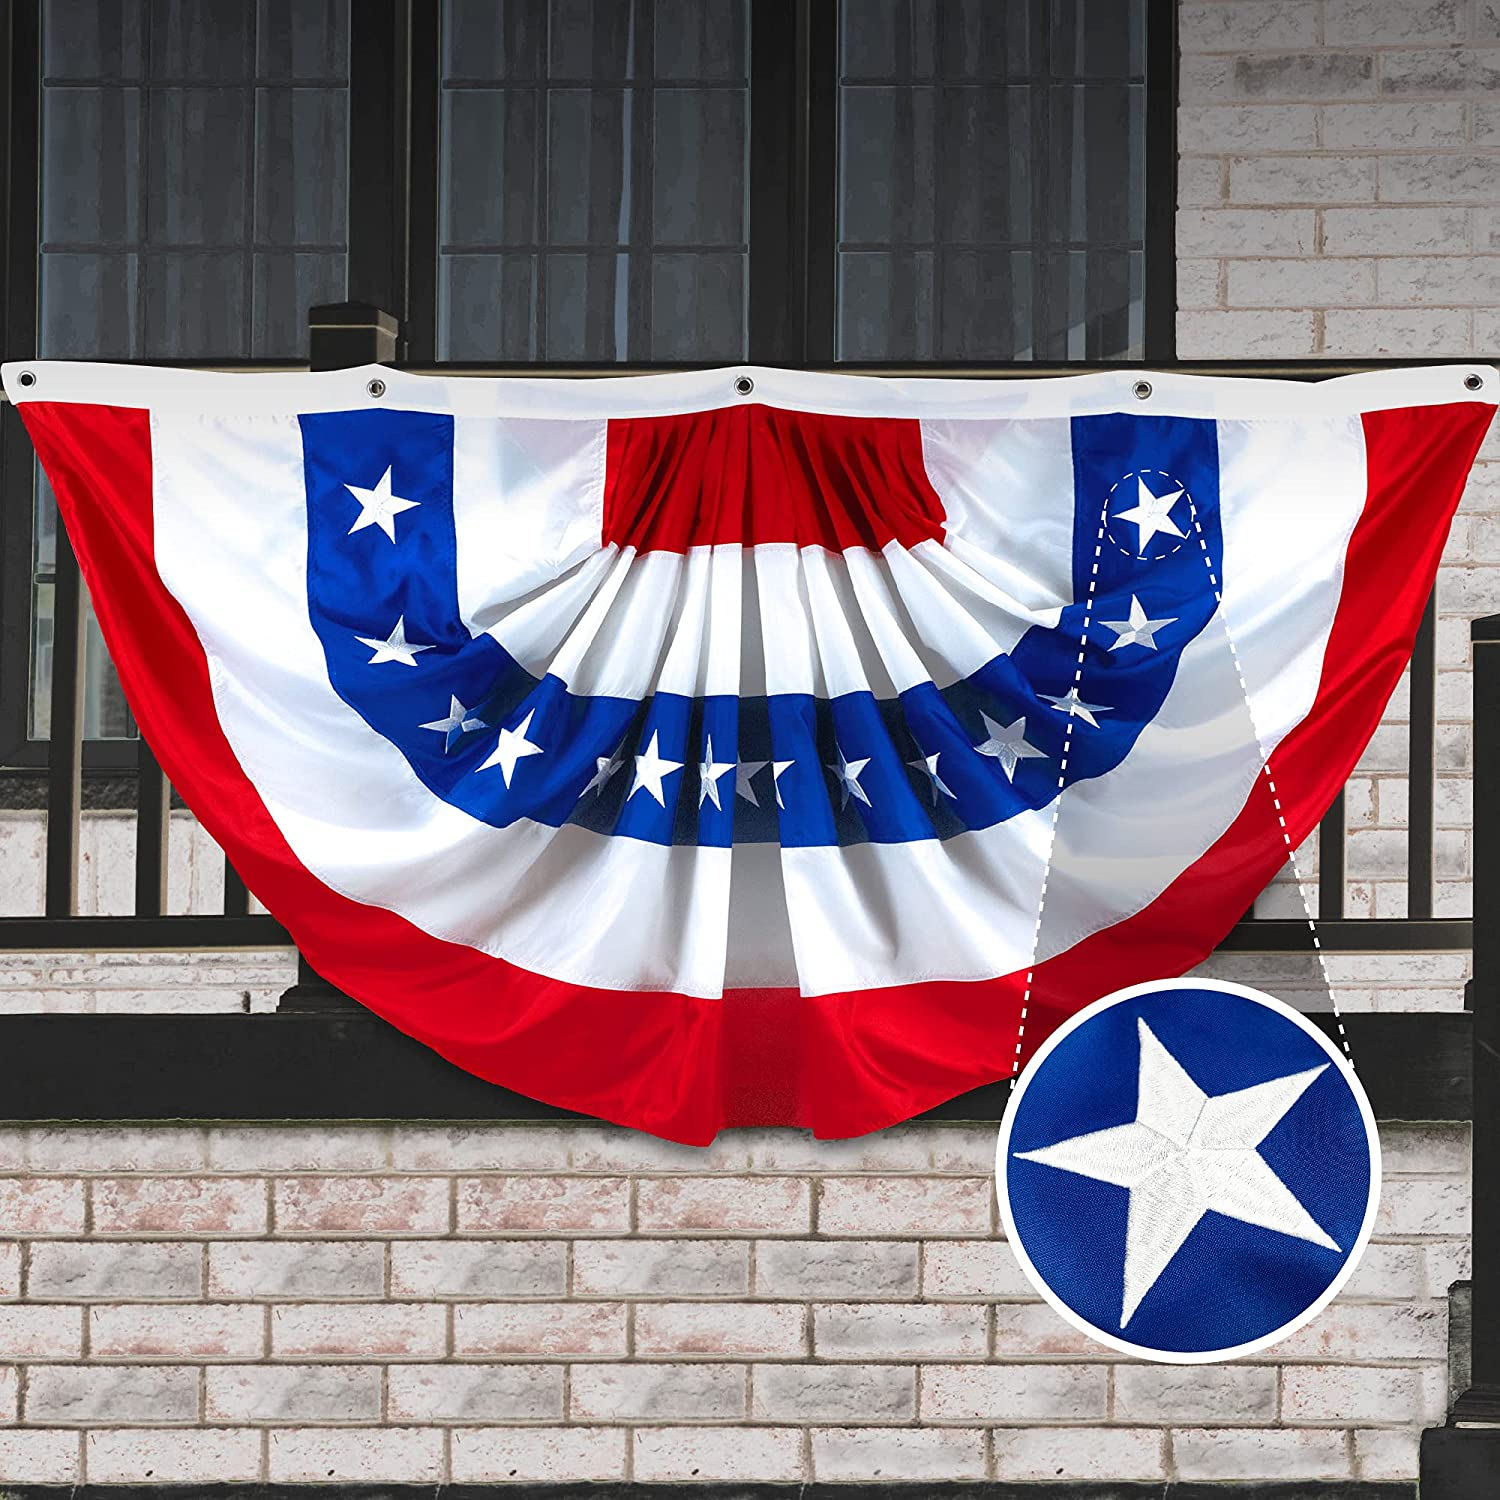 G128 - USA Pleated Fan Flag, 5x10 Feet American USA Bunting Decoration Flags Embroidered Patriotic Stars & Sewn Stripes Canvas Header Brass Grommets